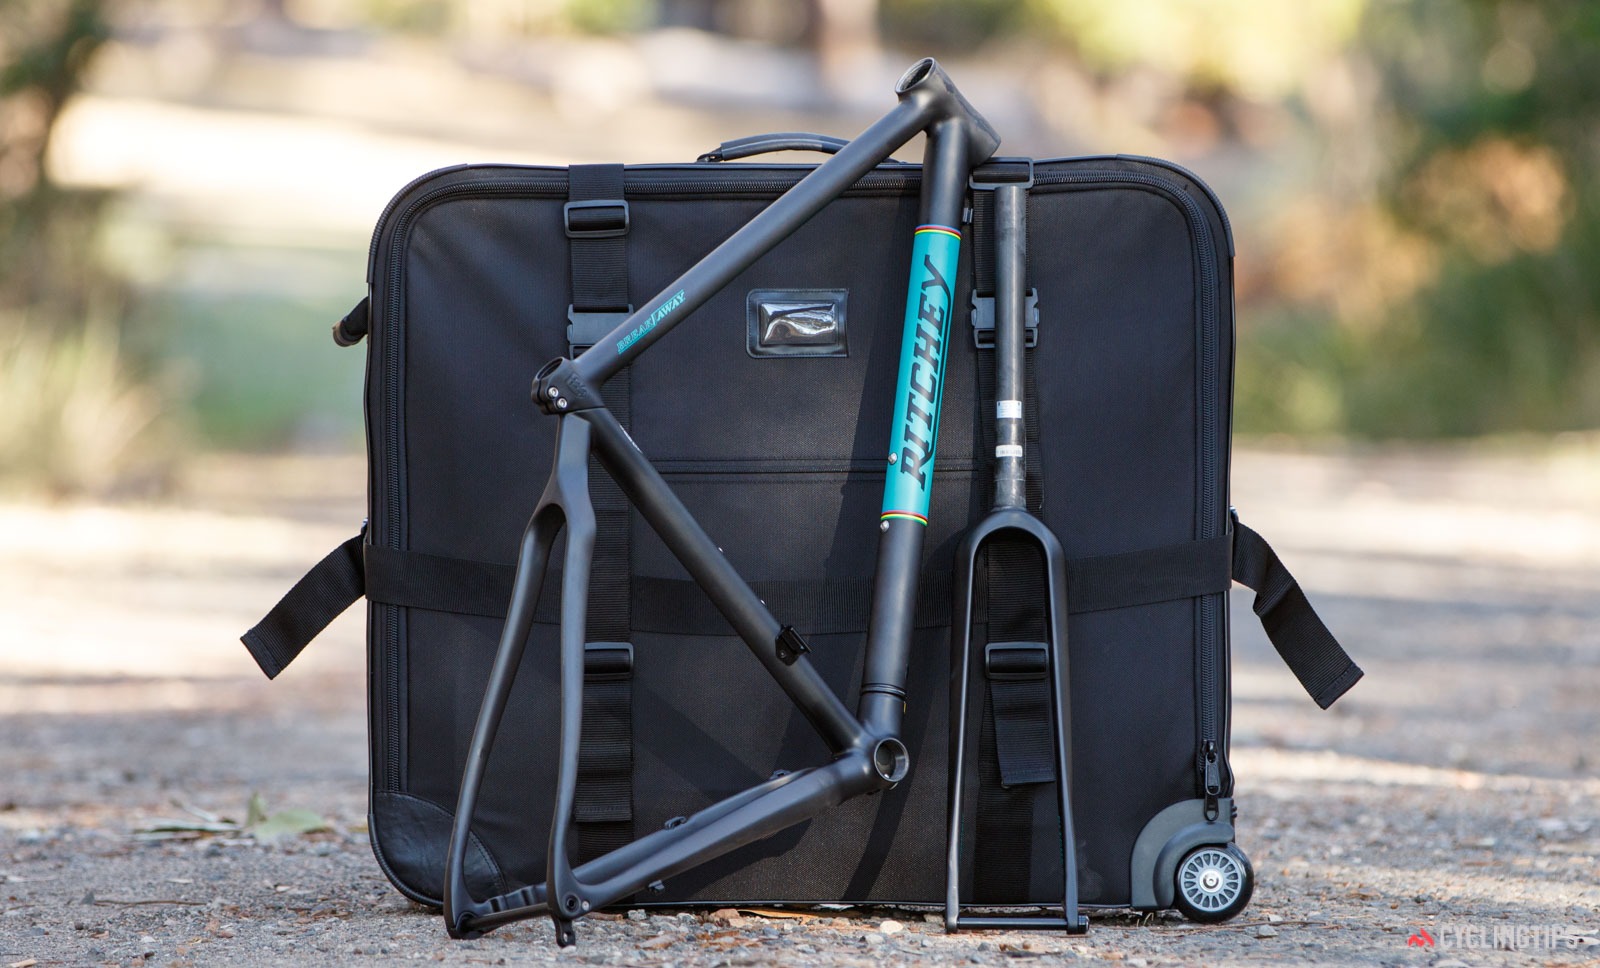 Ritchey Outback Carbon Break-Away frameset with case